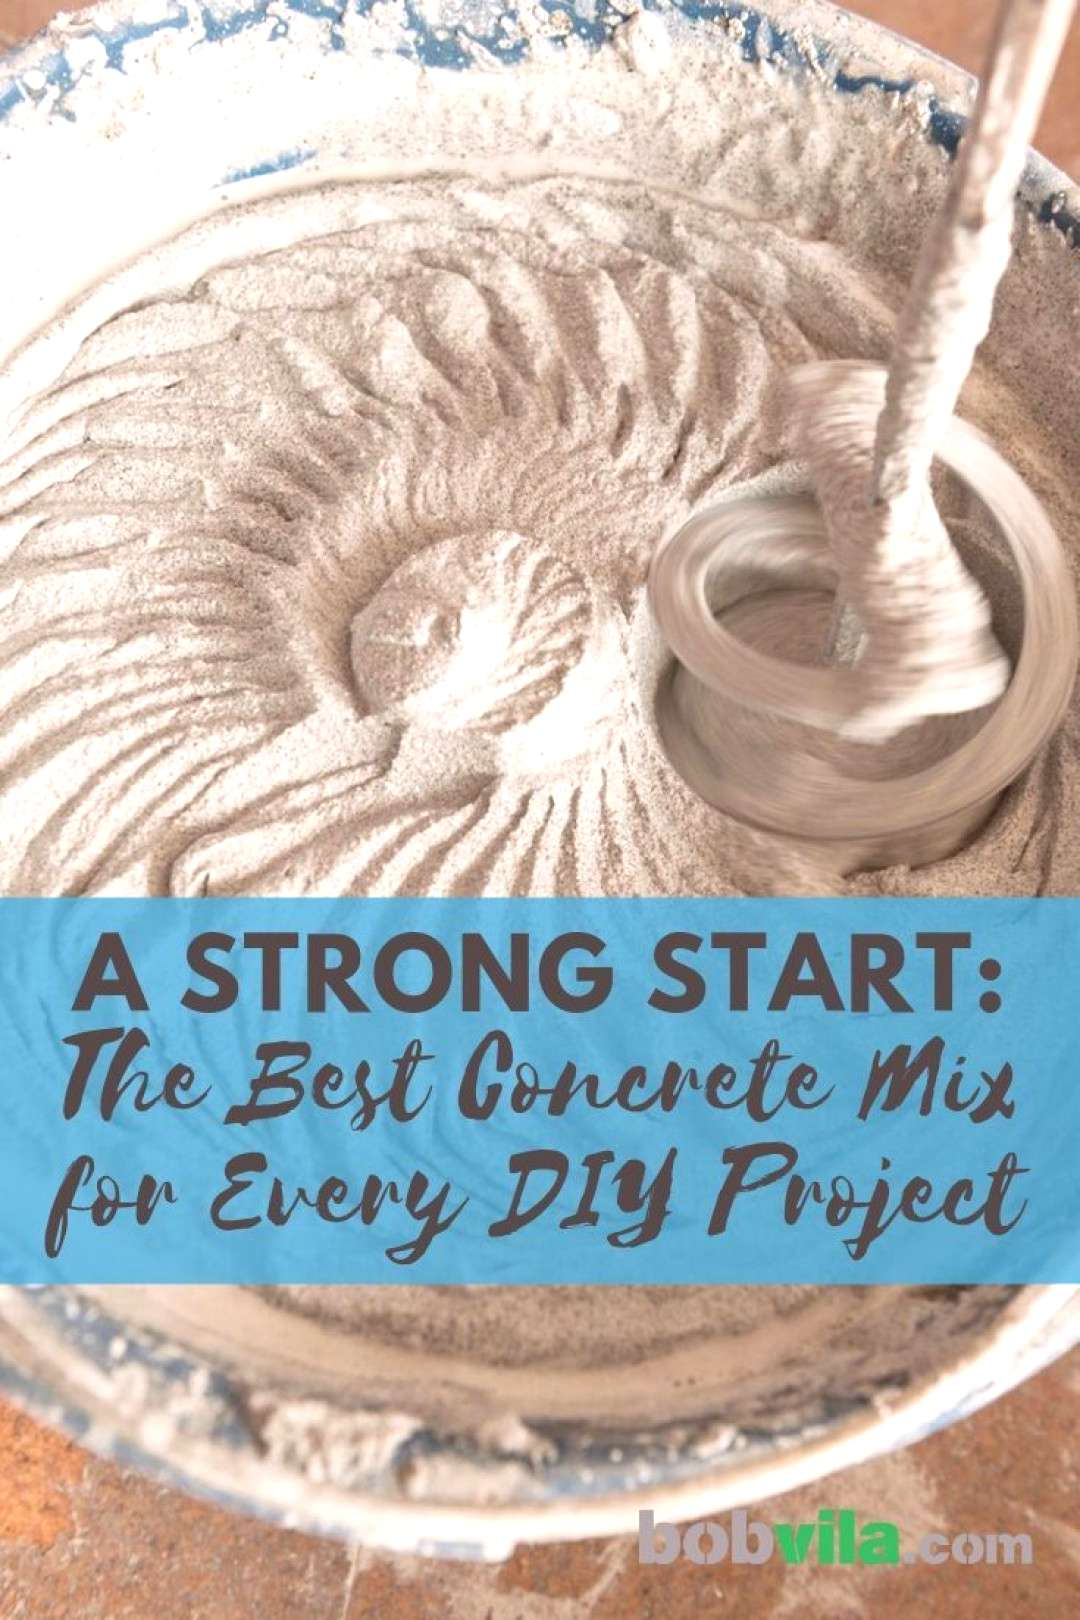 The Best Concrete Mix for Every DIY Project